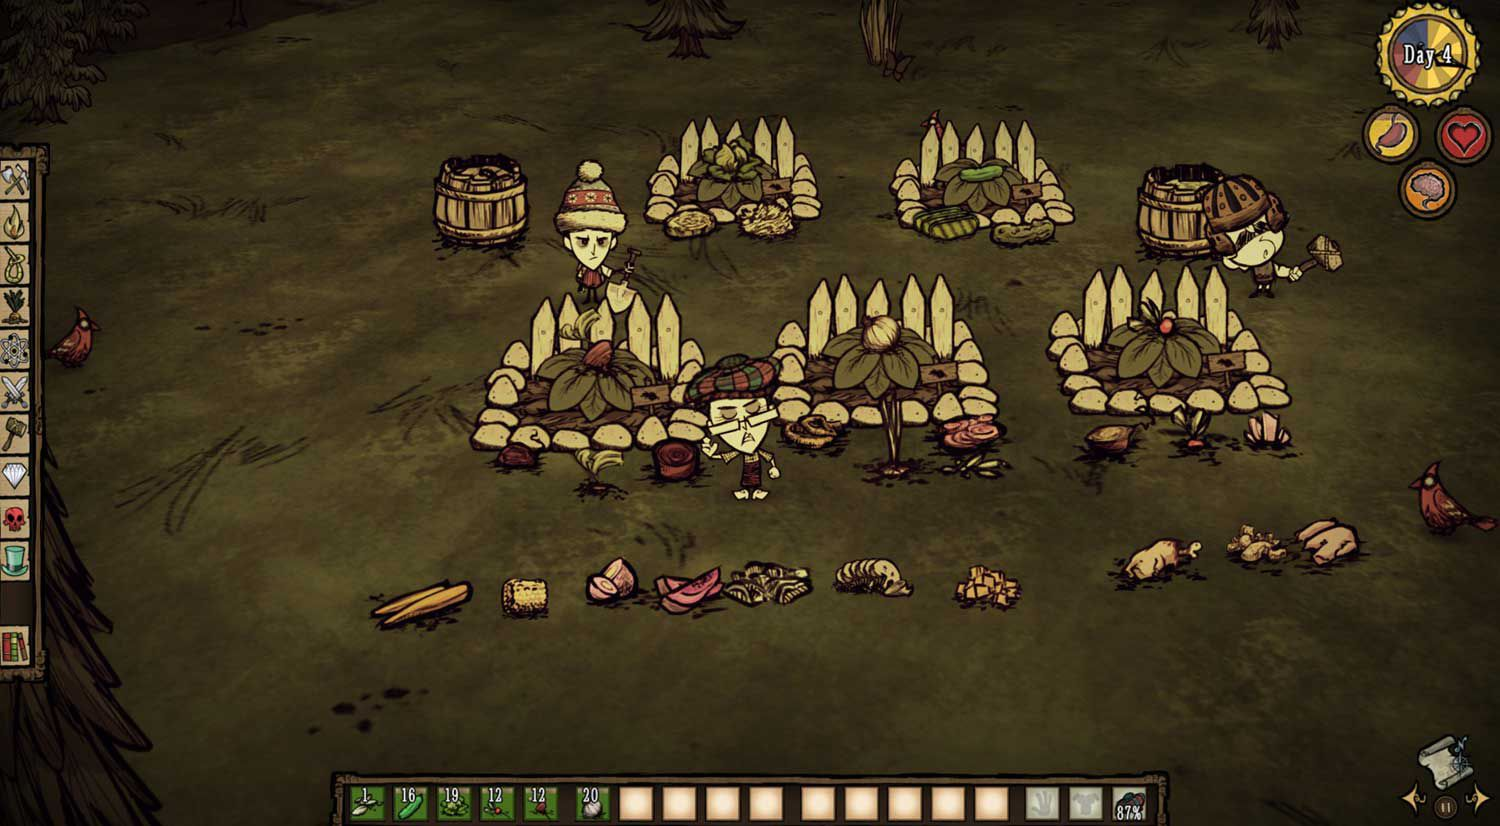 20160425-video-game-food-dont-starve3-courtesty-klei-entertainment.jpg